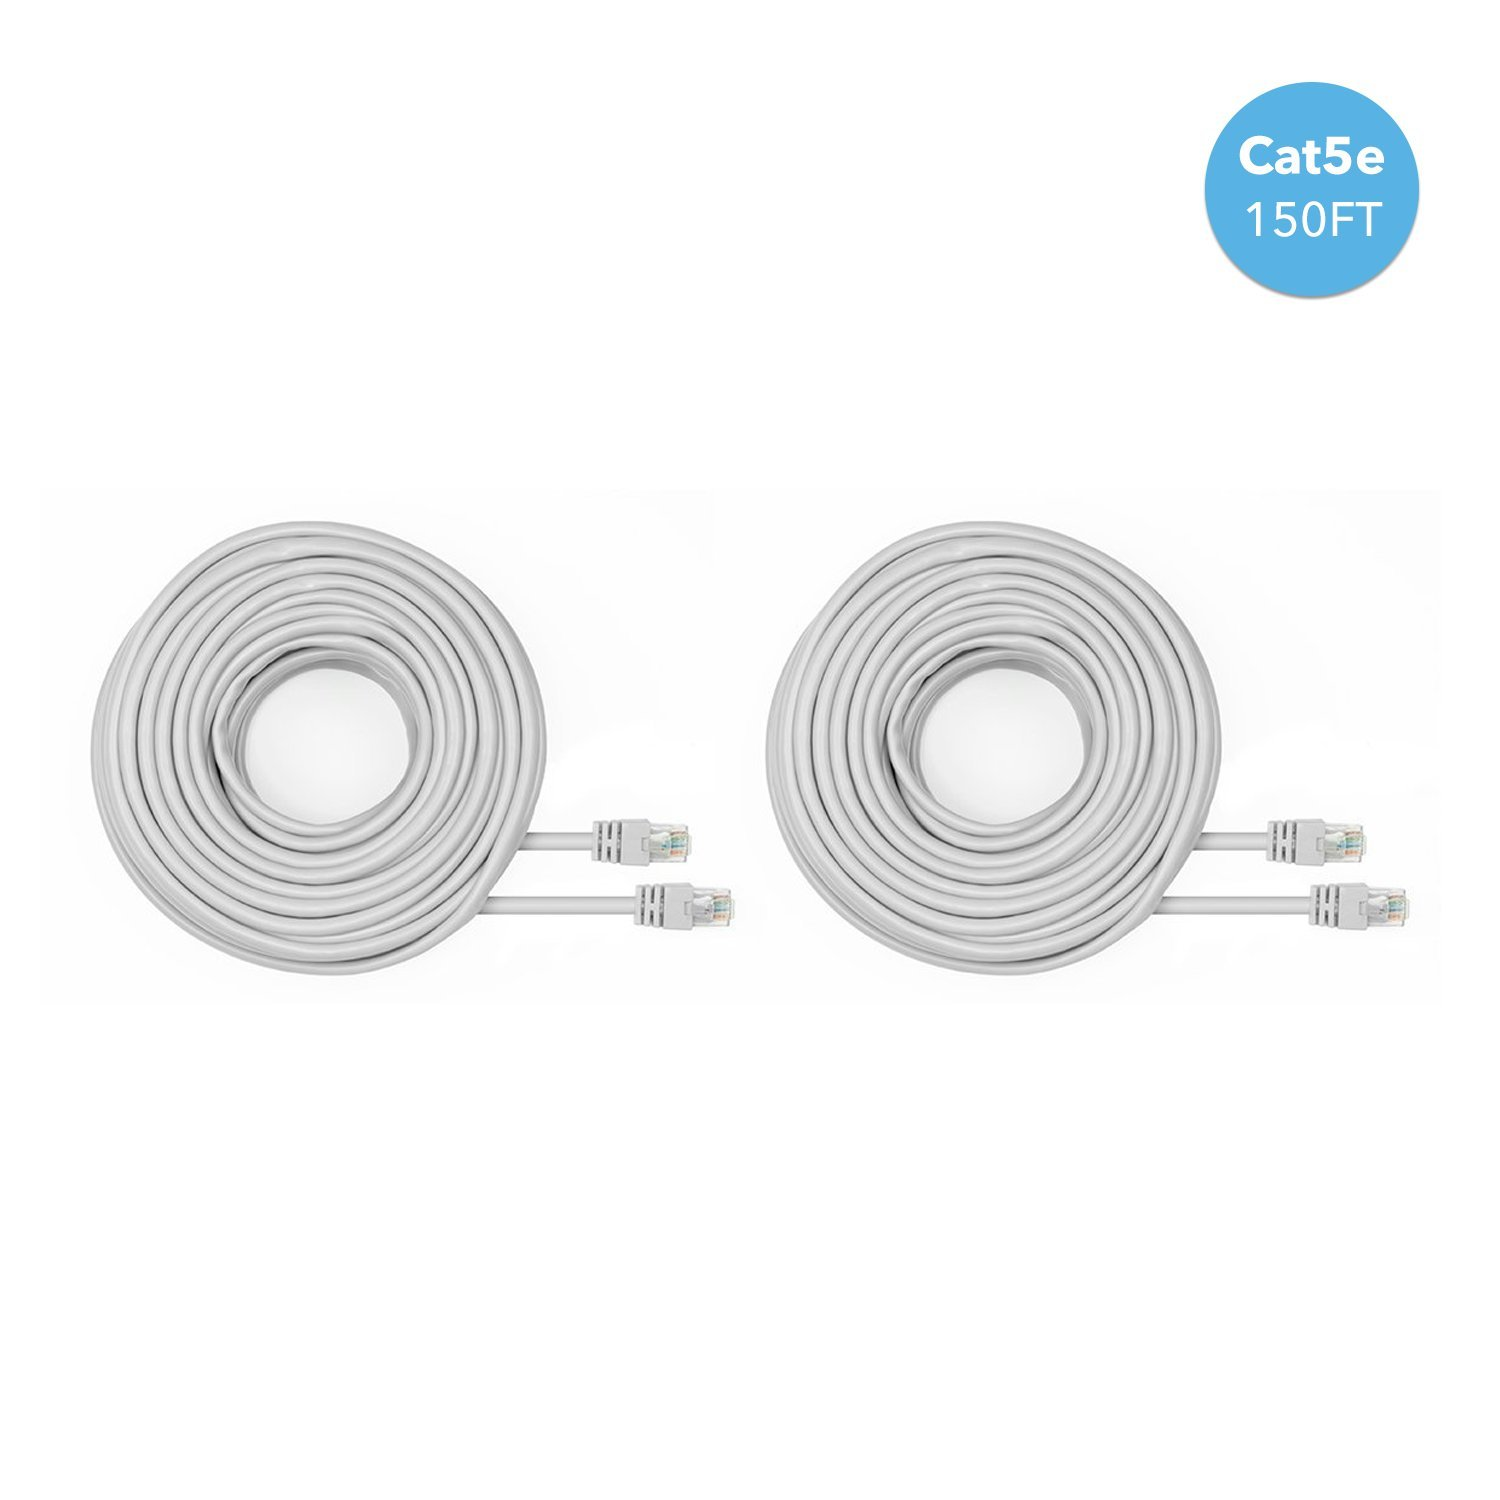 Amcrest Cat5e Cable 150ft Ethernet Cable Internet High Speed Network Cable for POE Security Cameras, Smart TV, PS4, Xbox One, Router, Laptop, Computer, Home, 2-Pack (2PACK-CAT5ECABLE150) by Amcrest